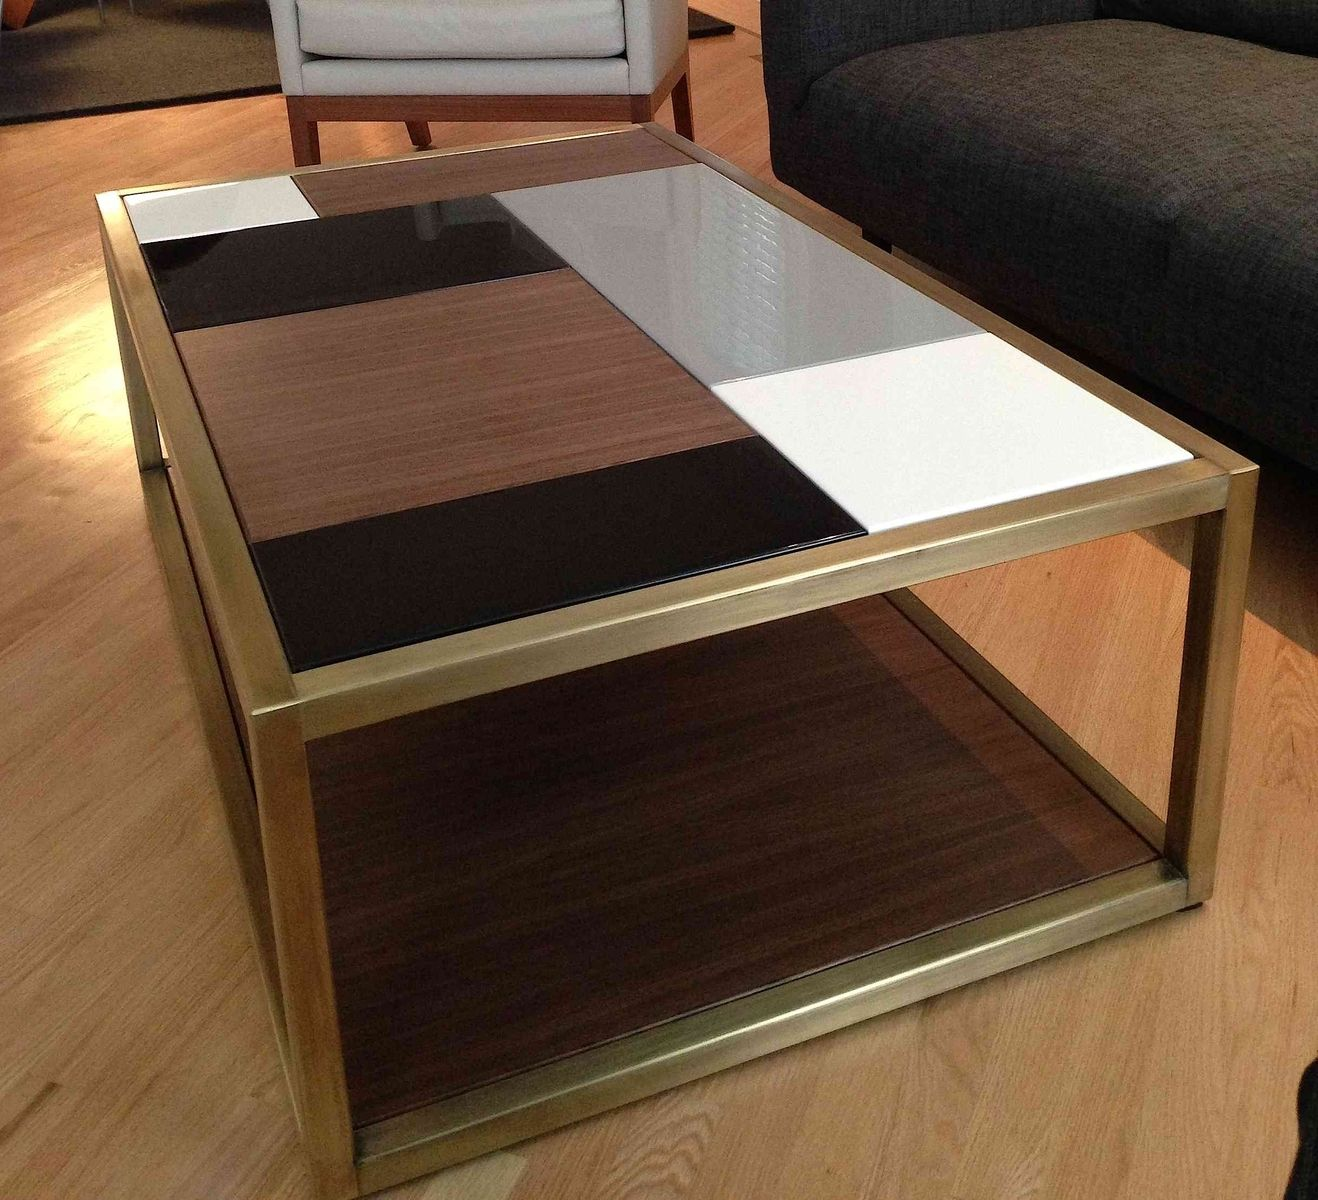 Custom metal modern coffee table base by andrew stansell for Wood coffee table kits